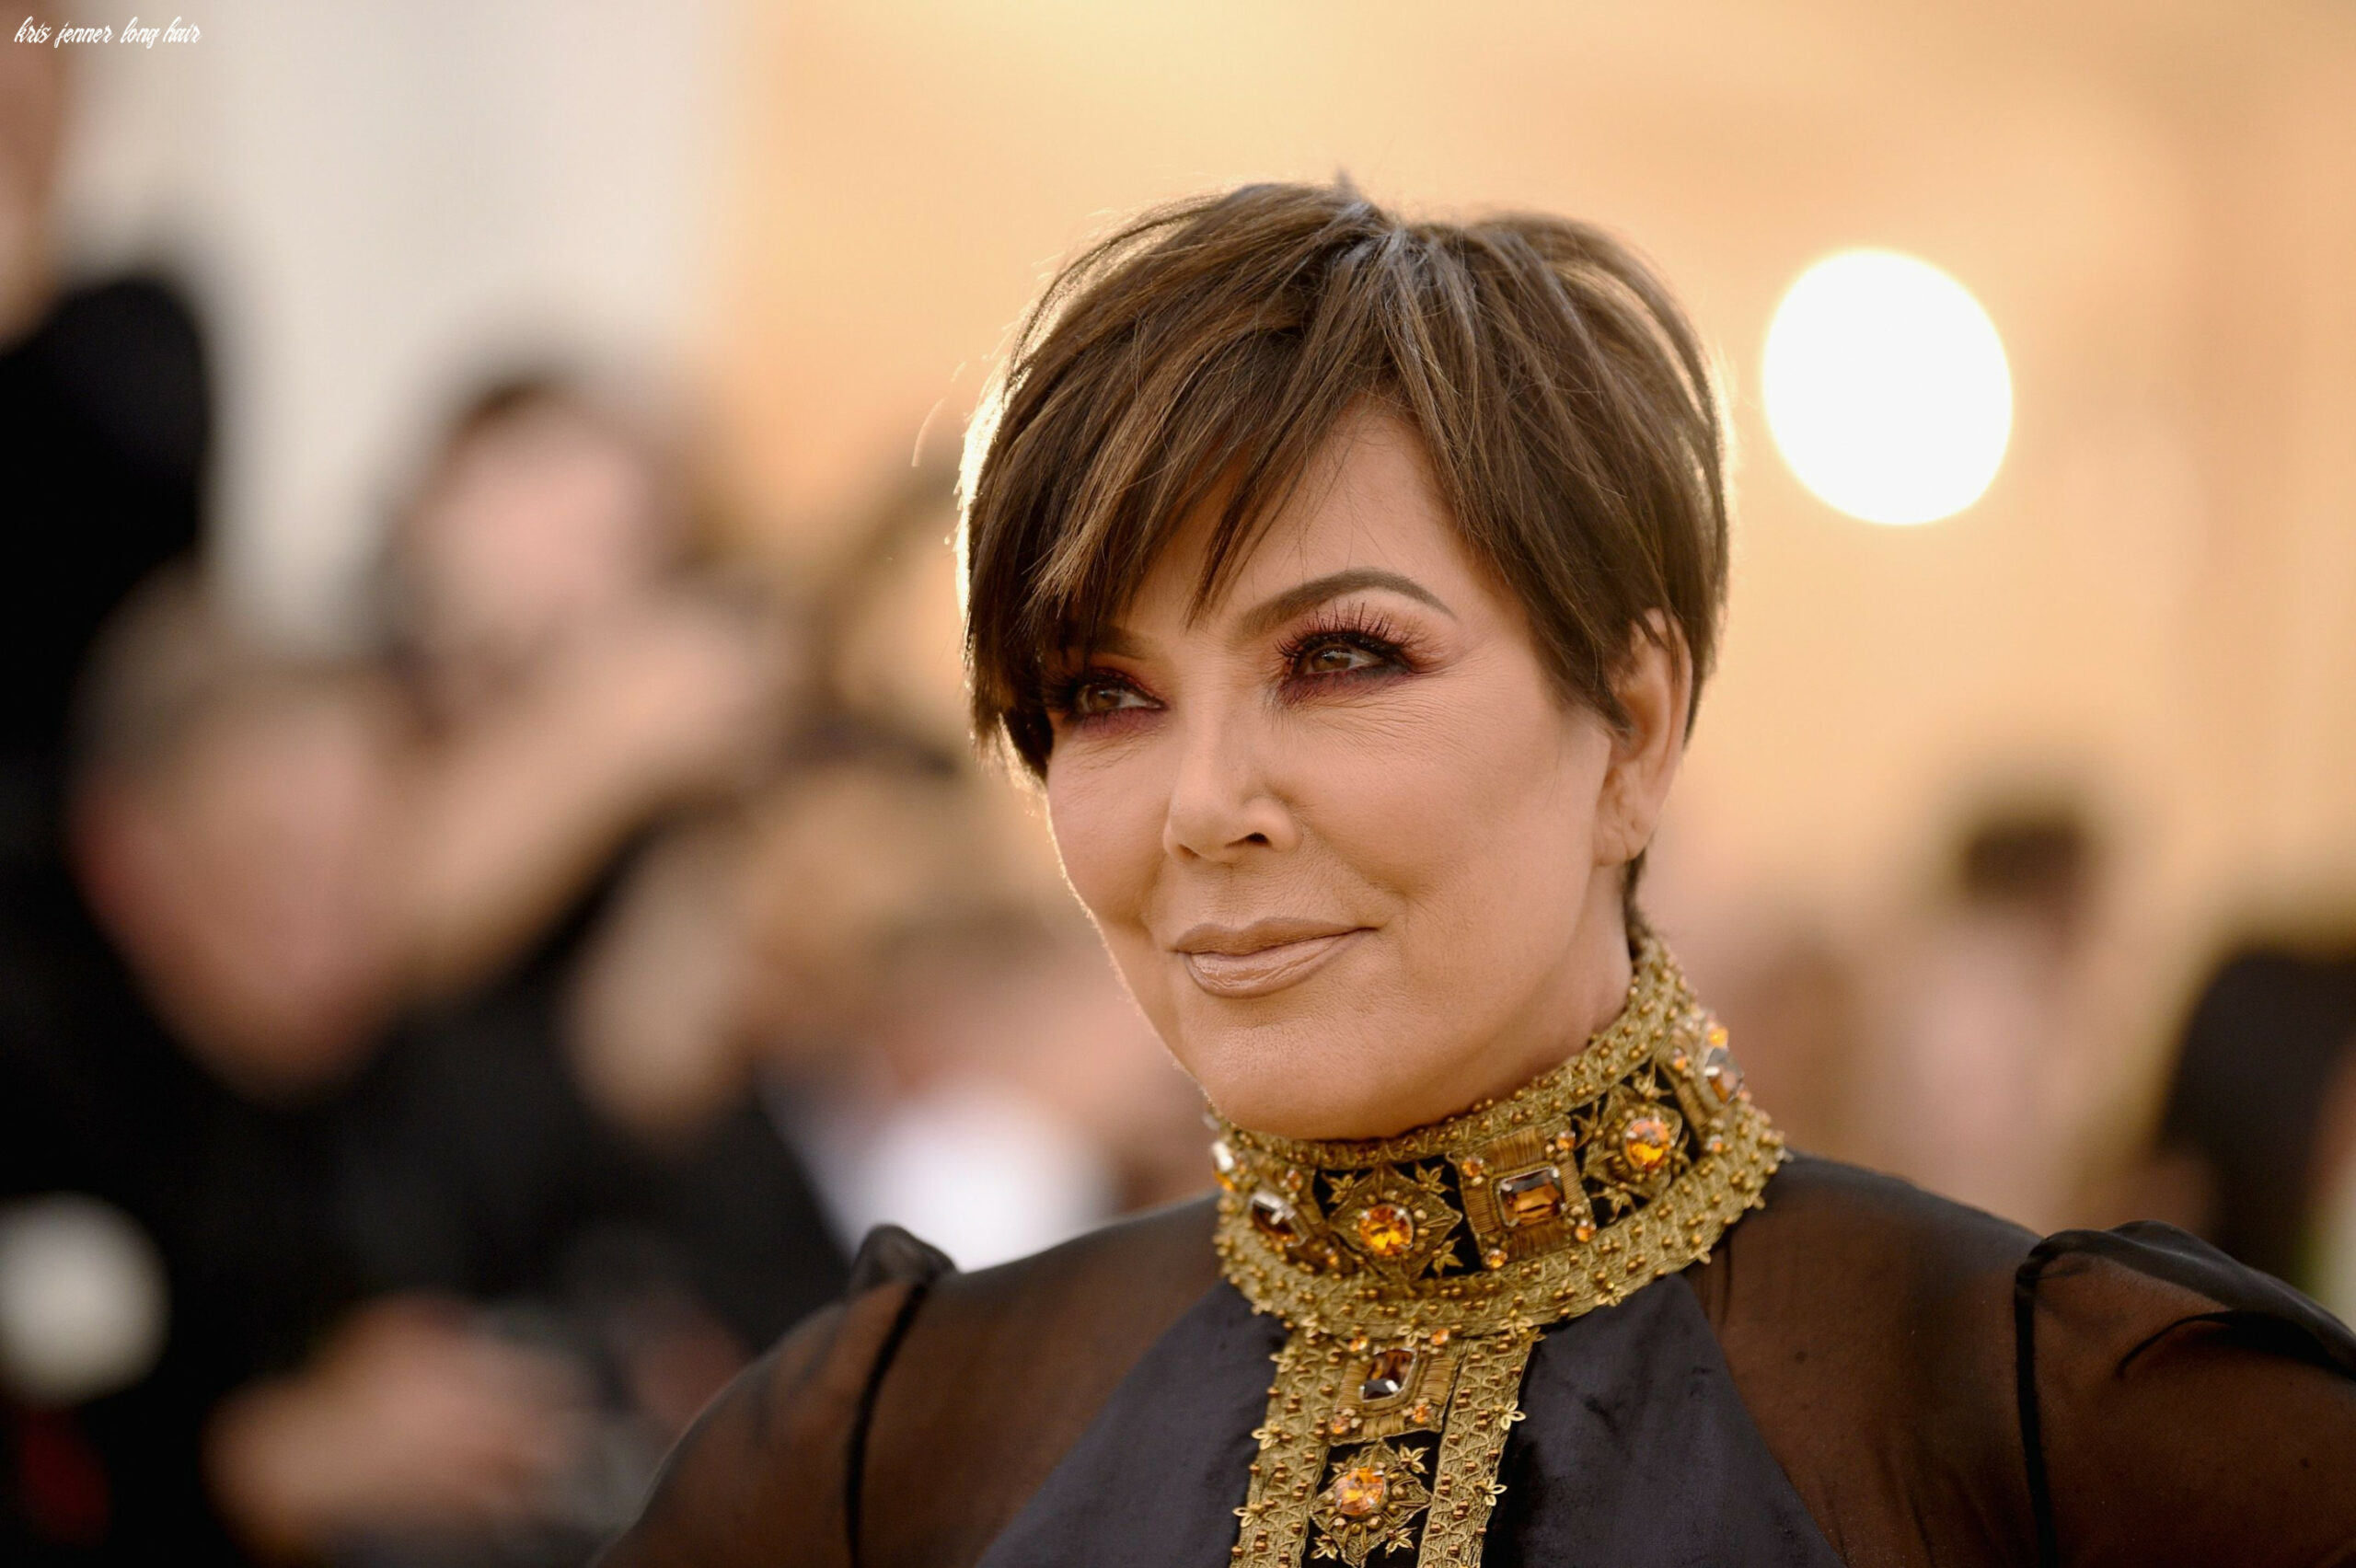 Kris jenner got a hair transformation and her textured lob is a